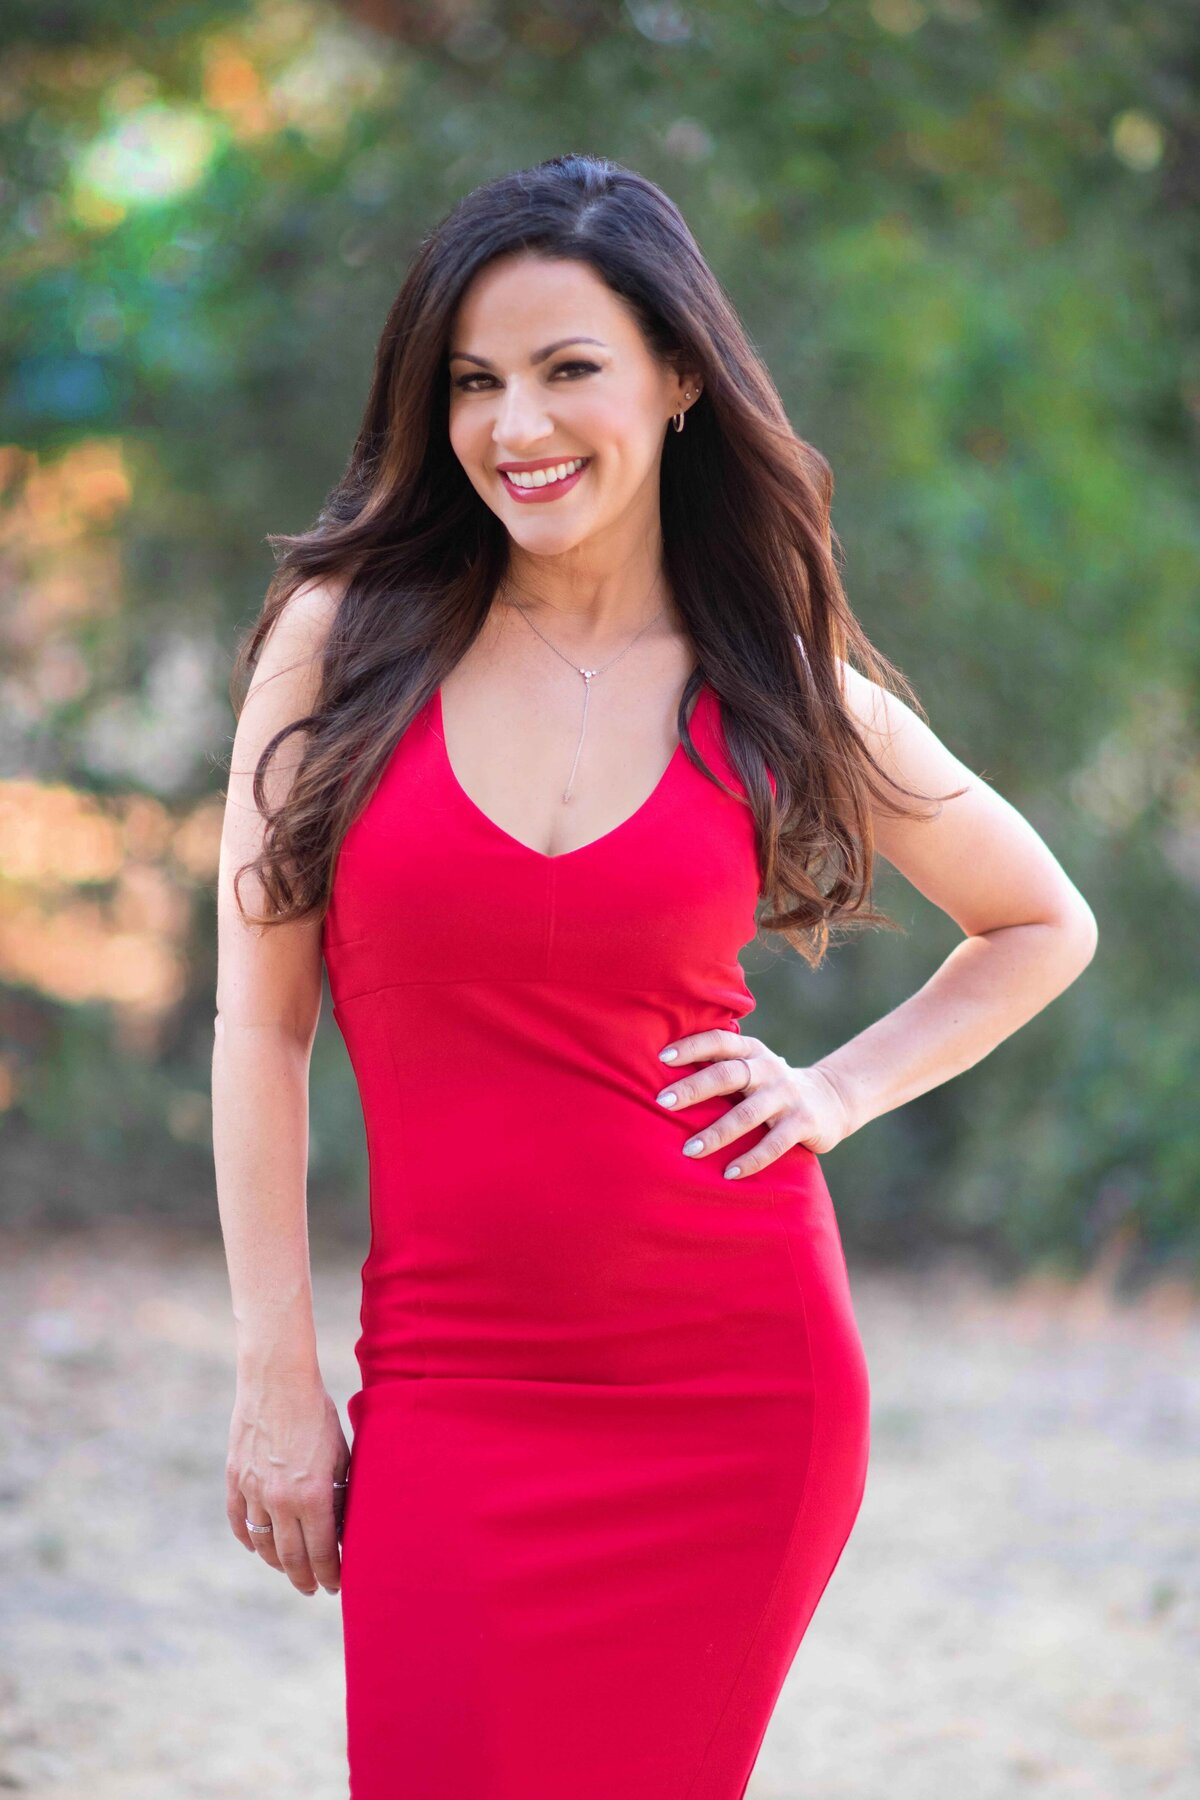 Maria-McCarthy-Photography-branding-red-dress